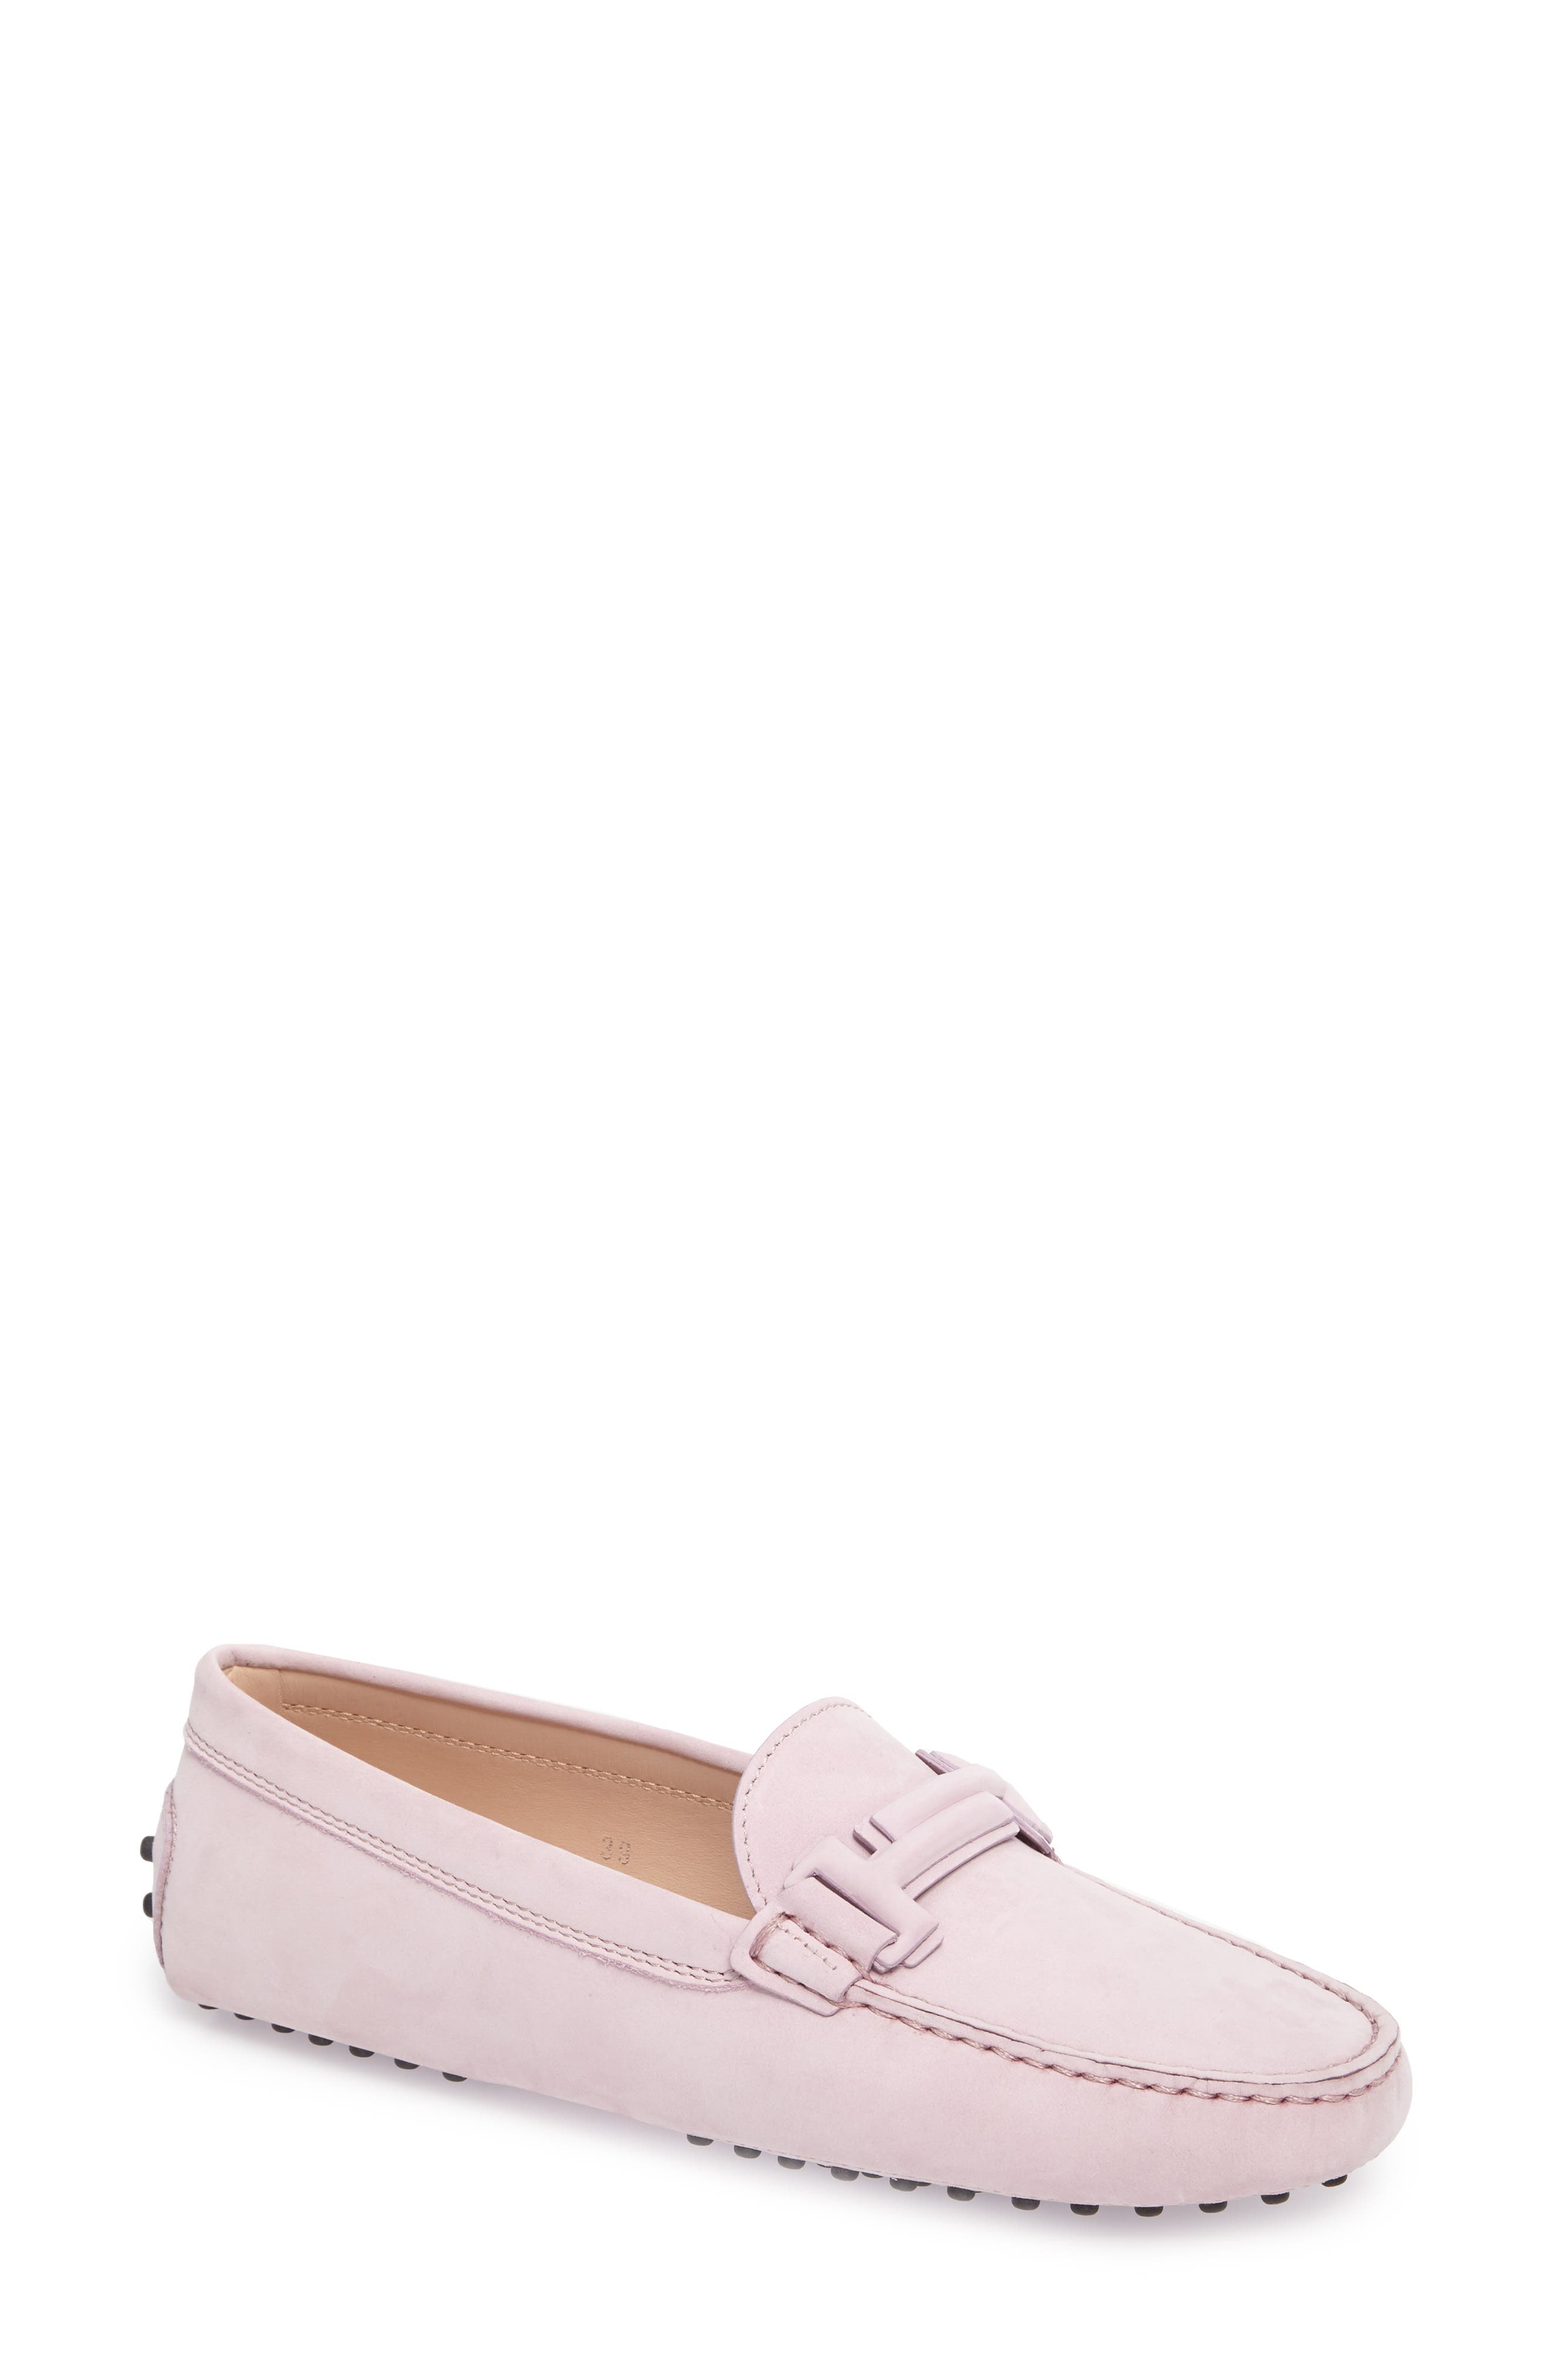 Alternate Image 1 Selected - Tod's Gommini Covered Double T Loafer (Women)